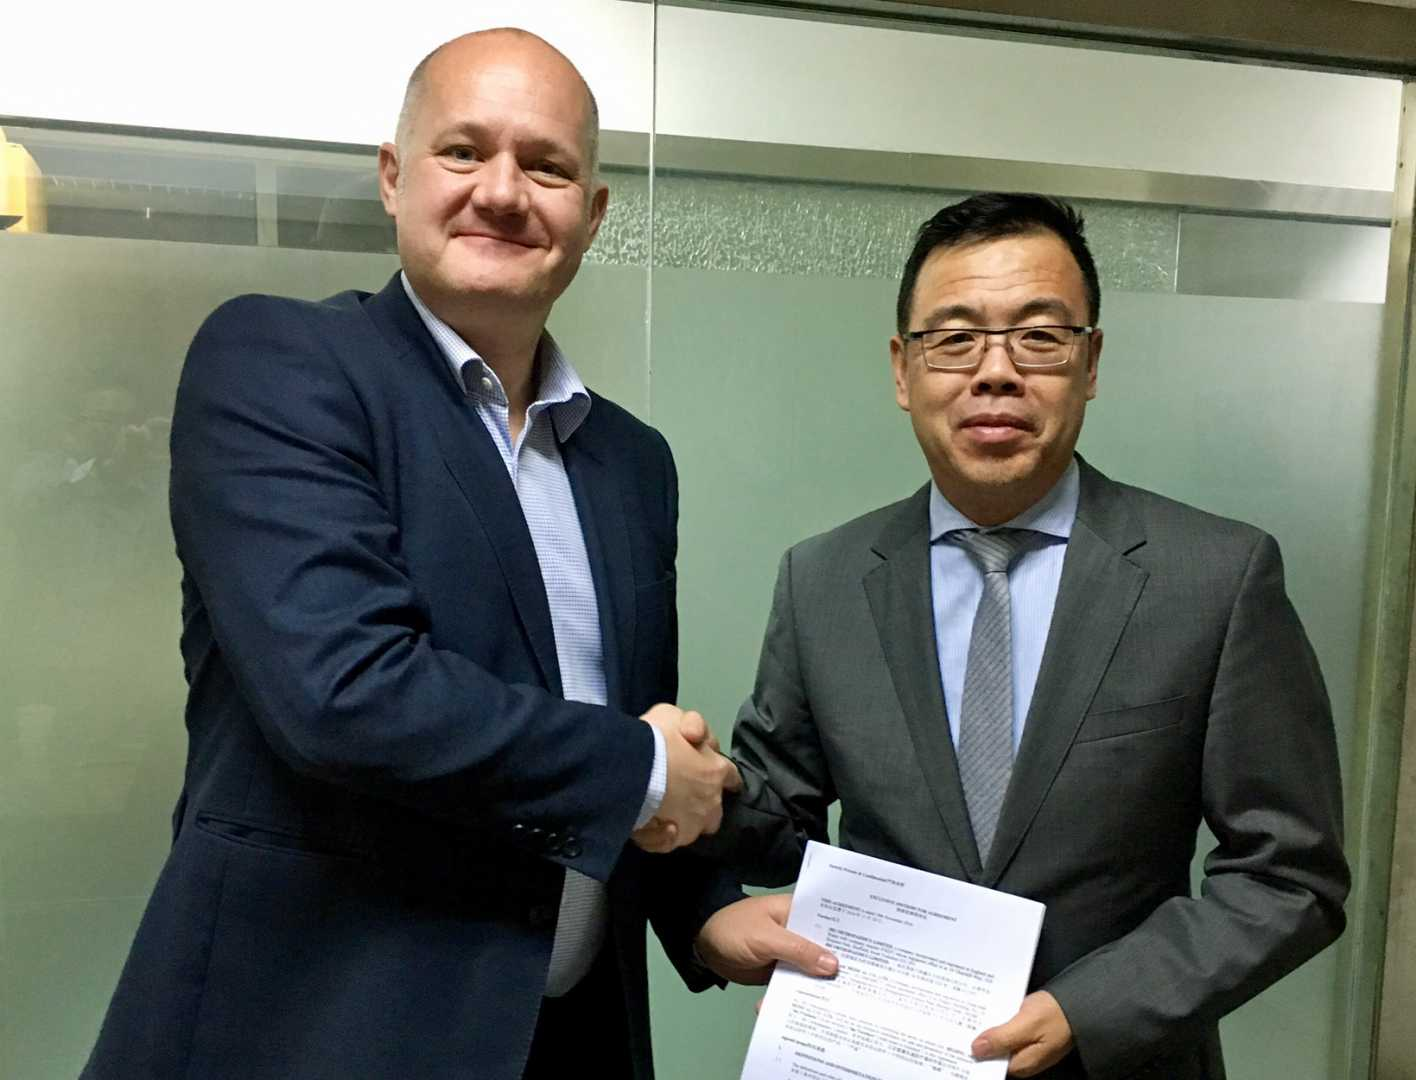 The three-year deal means Chinese designed hip implants are being manufactured in JRI's advanced Sheffield plant for sale in China - image courtesy of JRI Orthopaedics.